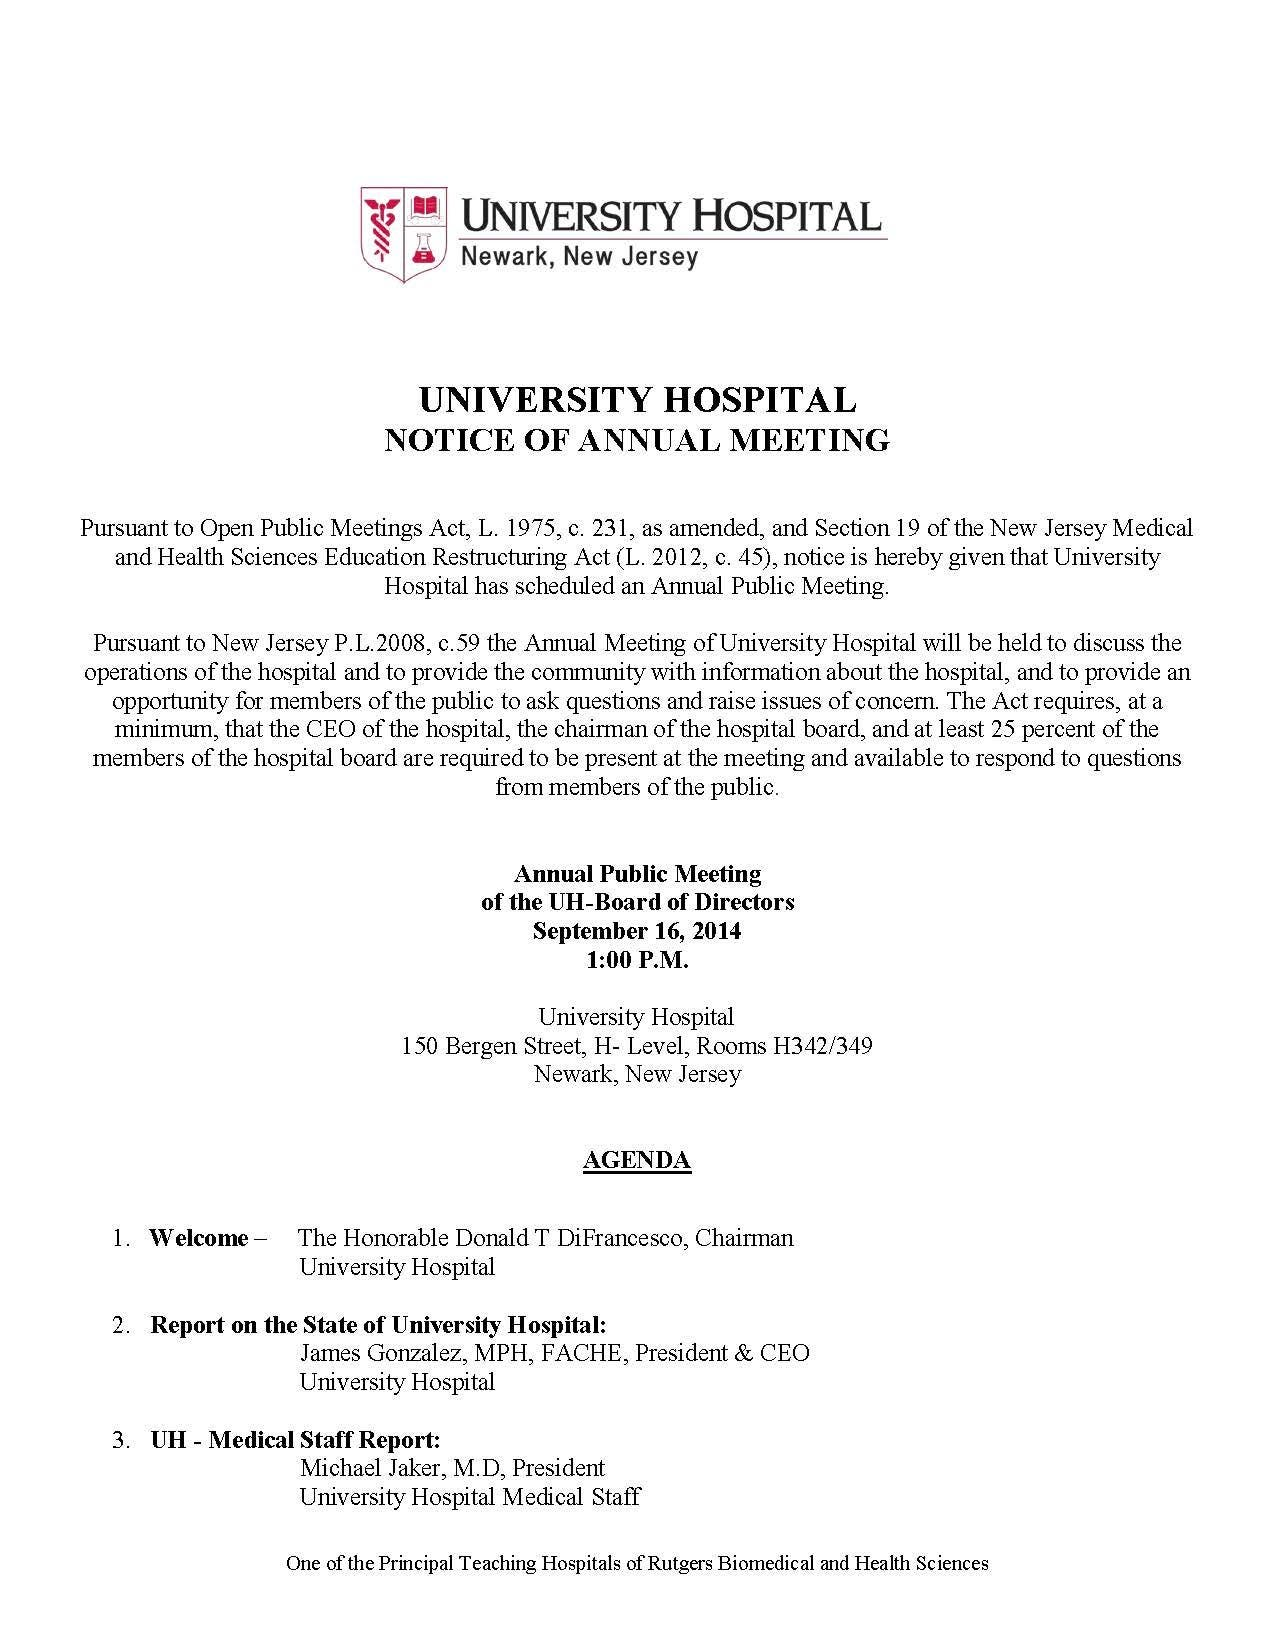 University Hospital Notice of Annual Public Meeting | Newark, NJ Patch